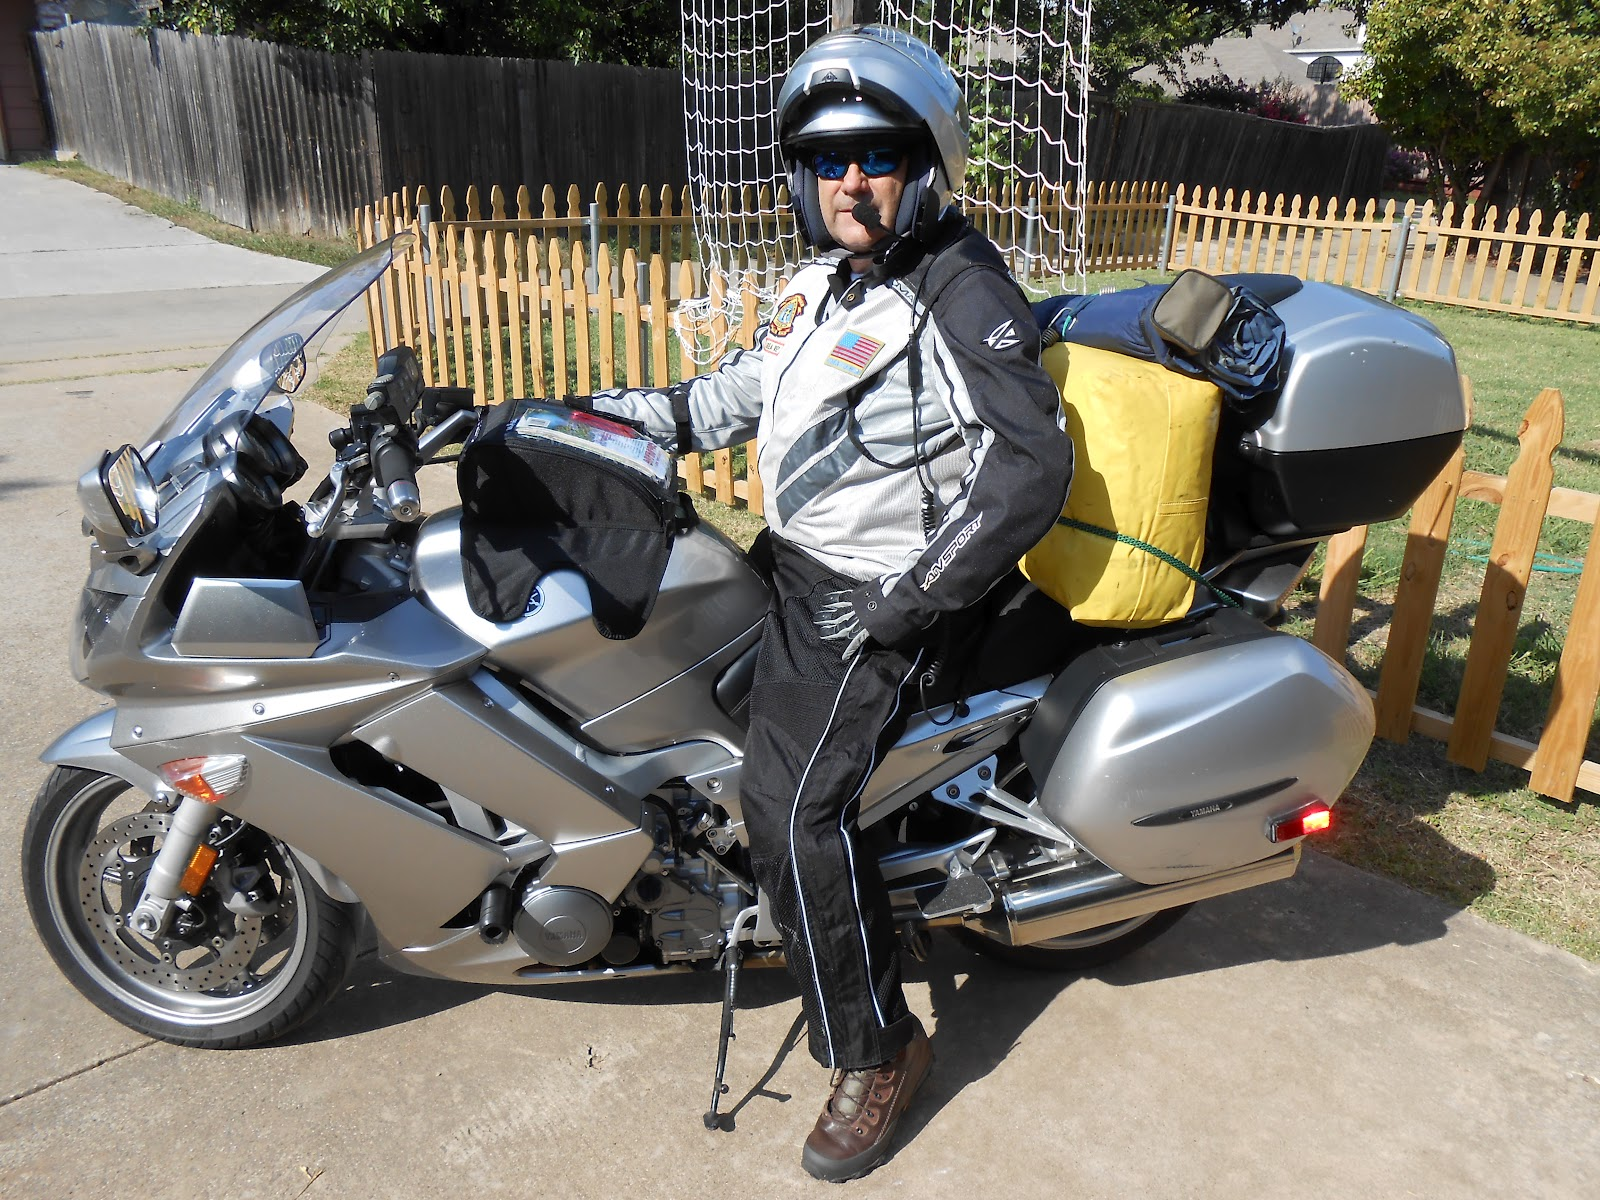 Ordinary Biker Oz: Two years on the Yamaha FJR - a review